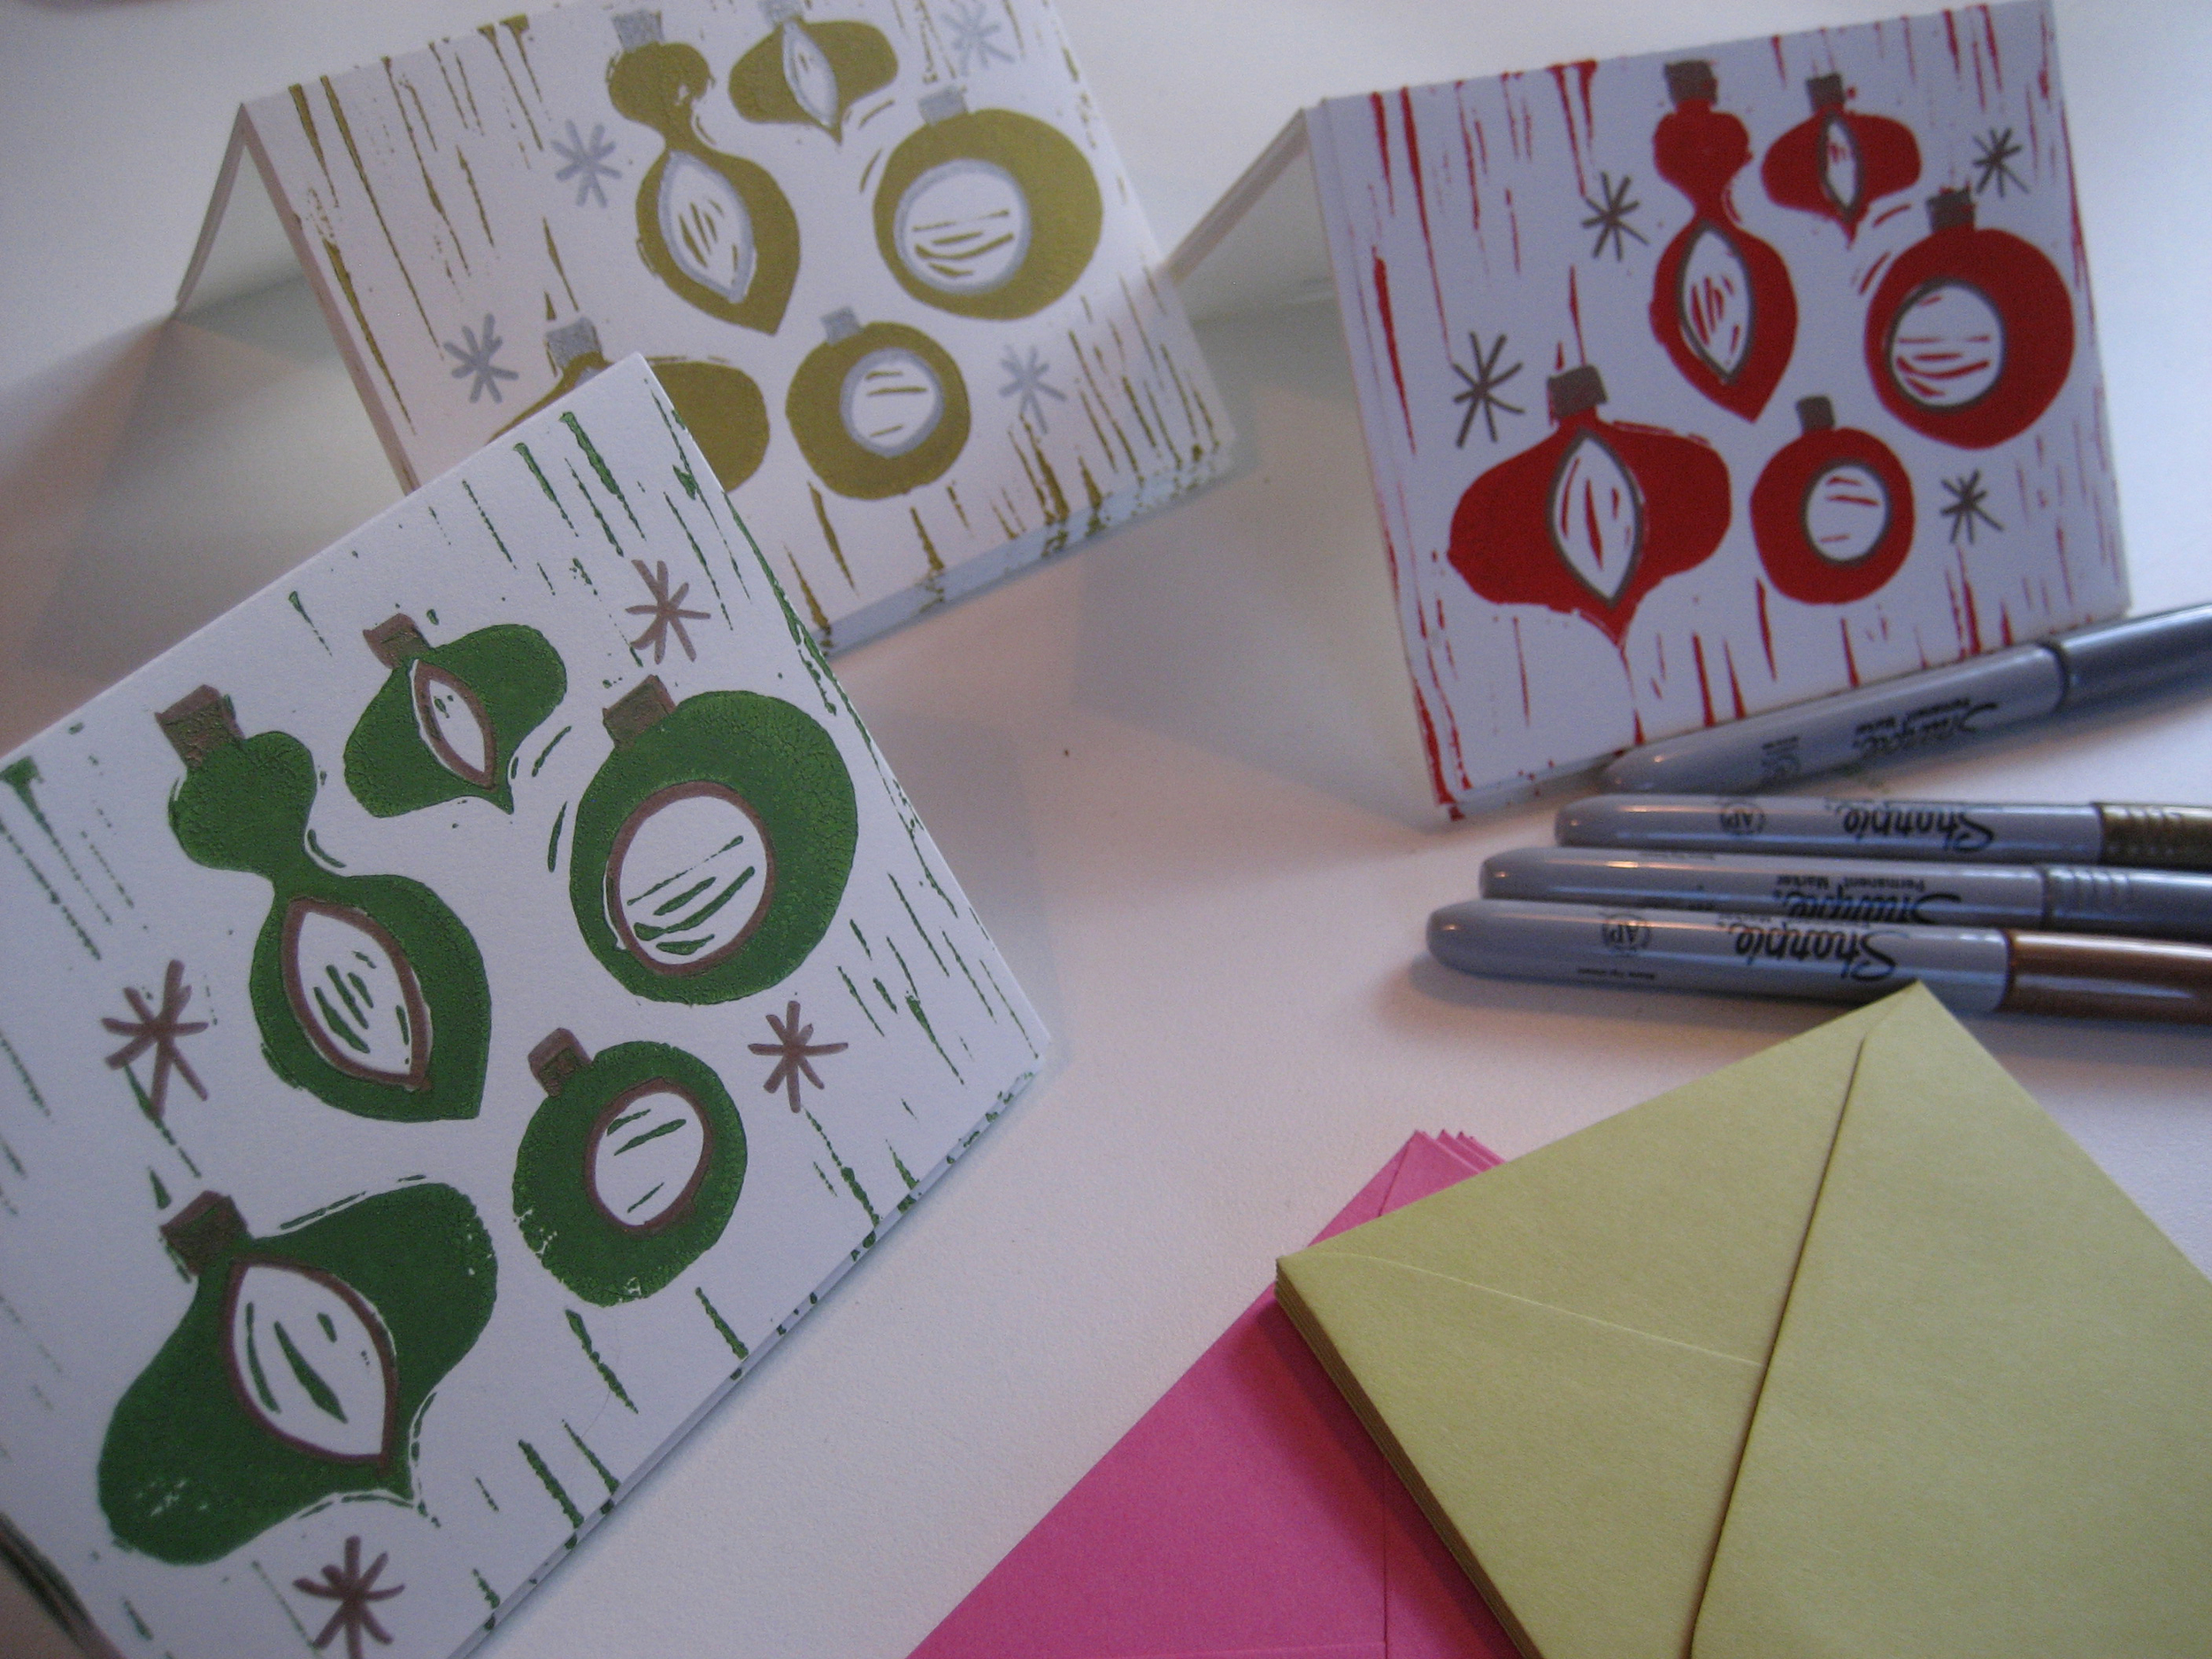 Linoleum block cards